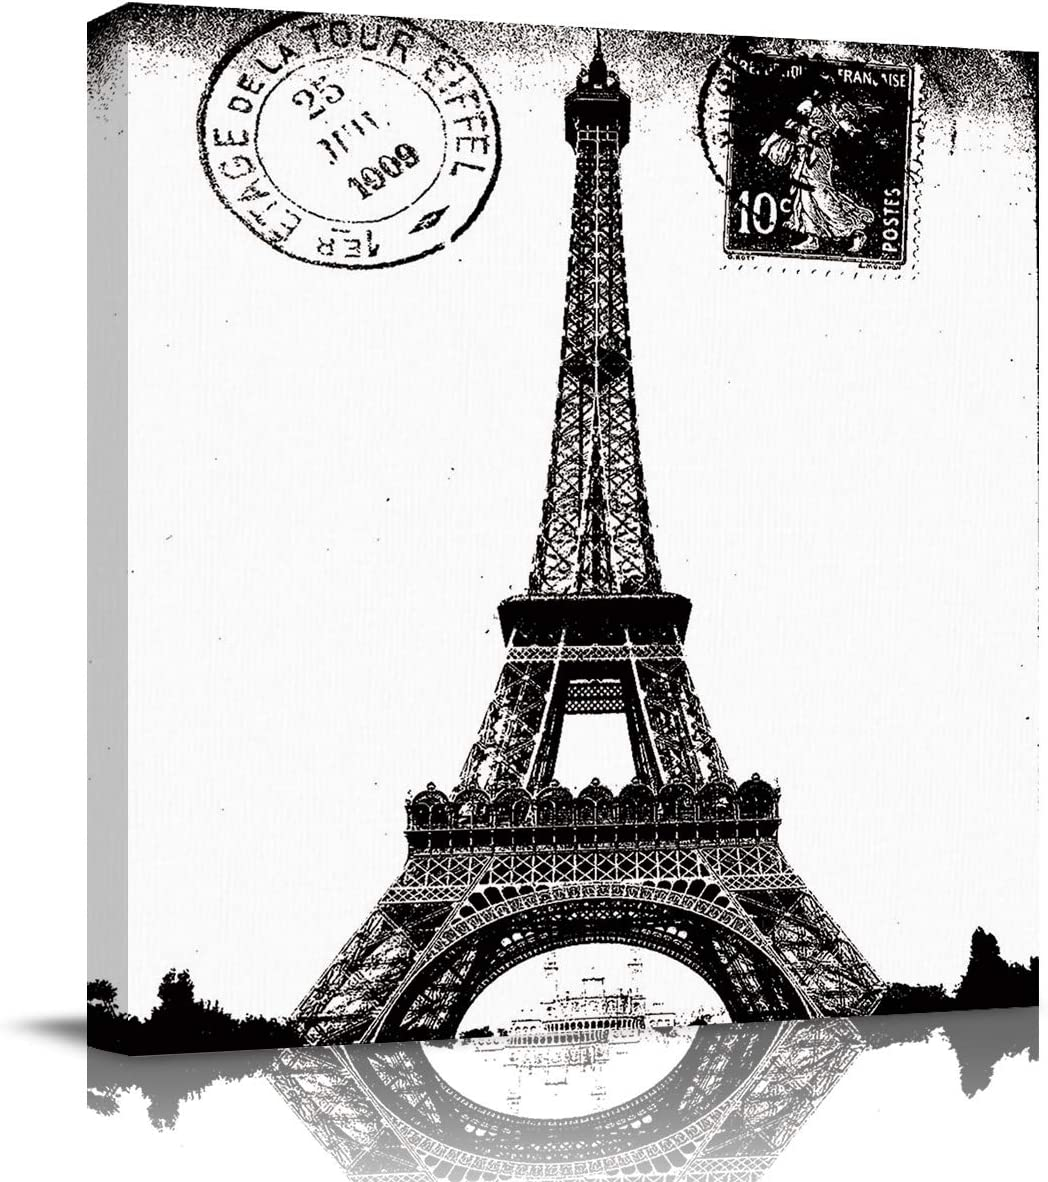 Vintage Wall Art Oil Paintings on Canvas Print with Wooden Framed Ready to Hang Paris Eiffel Tower Black White Office Artwork Home Decoration Living Room Bedroom Bathroom Giclee Walls Decor 12x12in